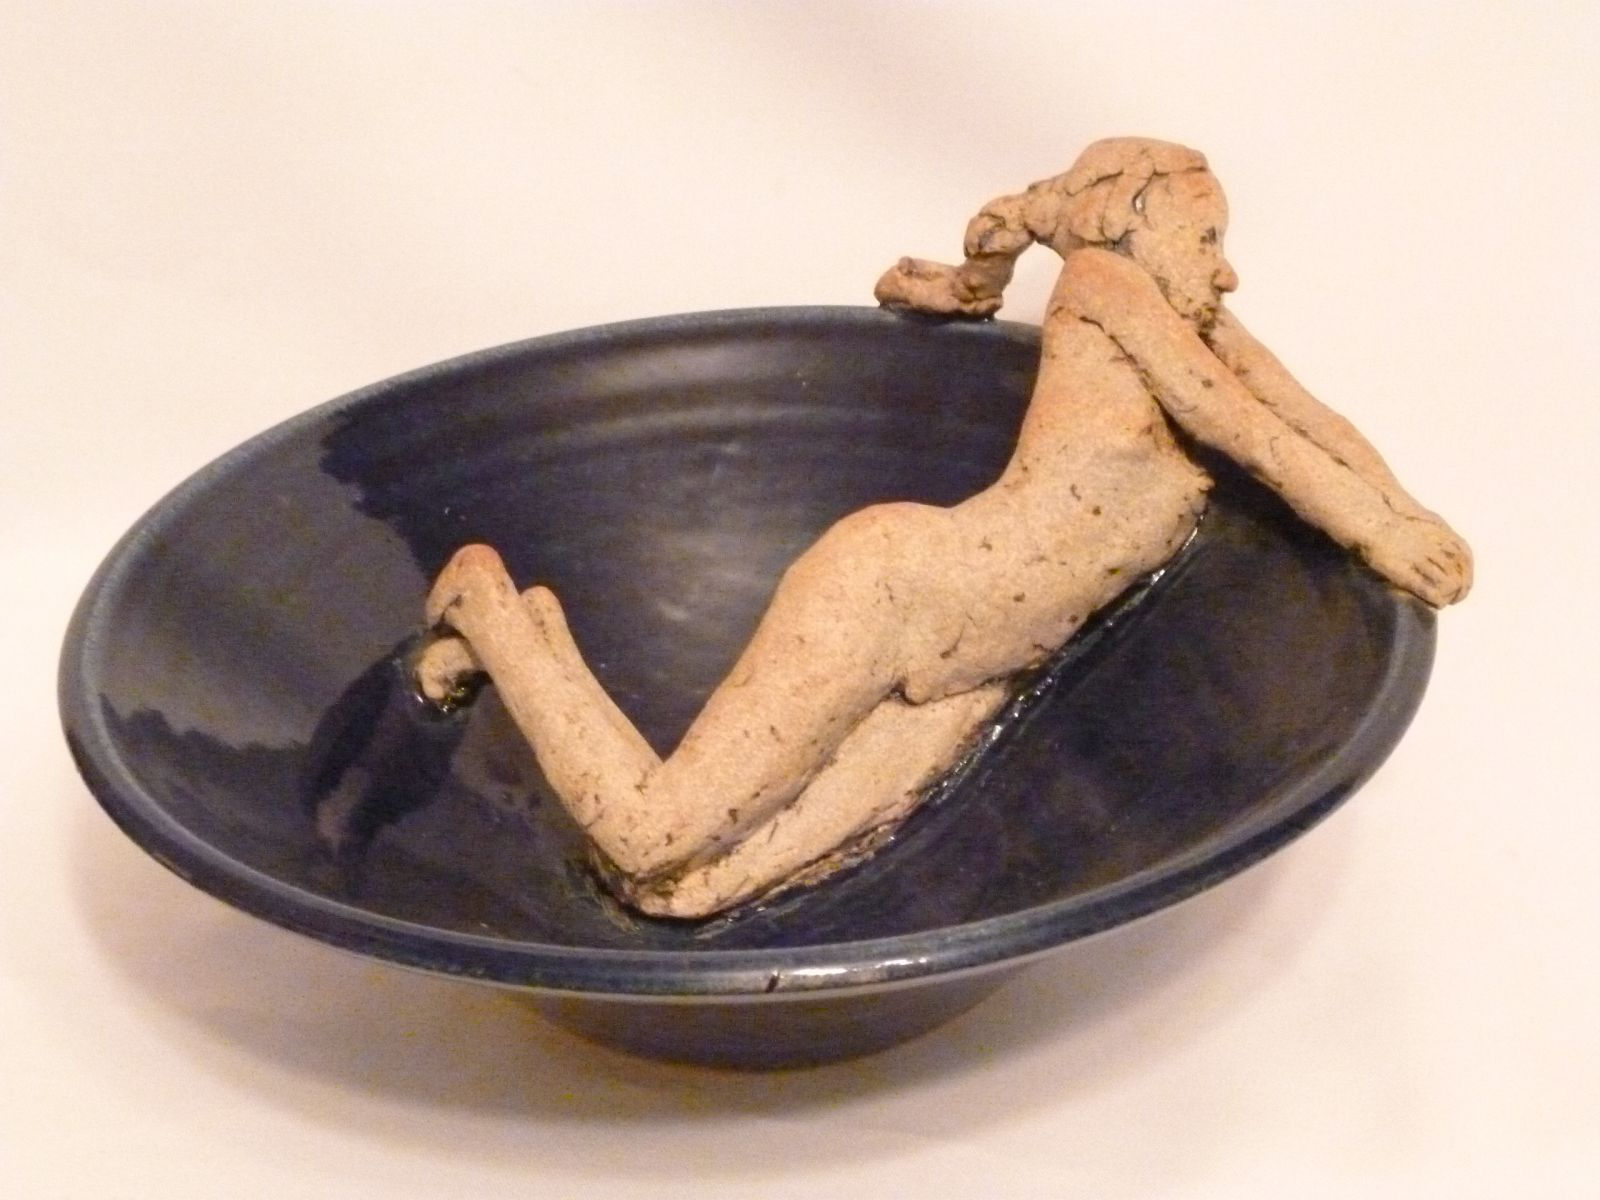 NUDE IN BOWL